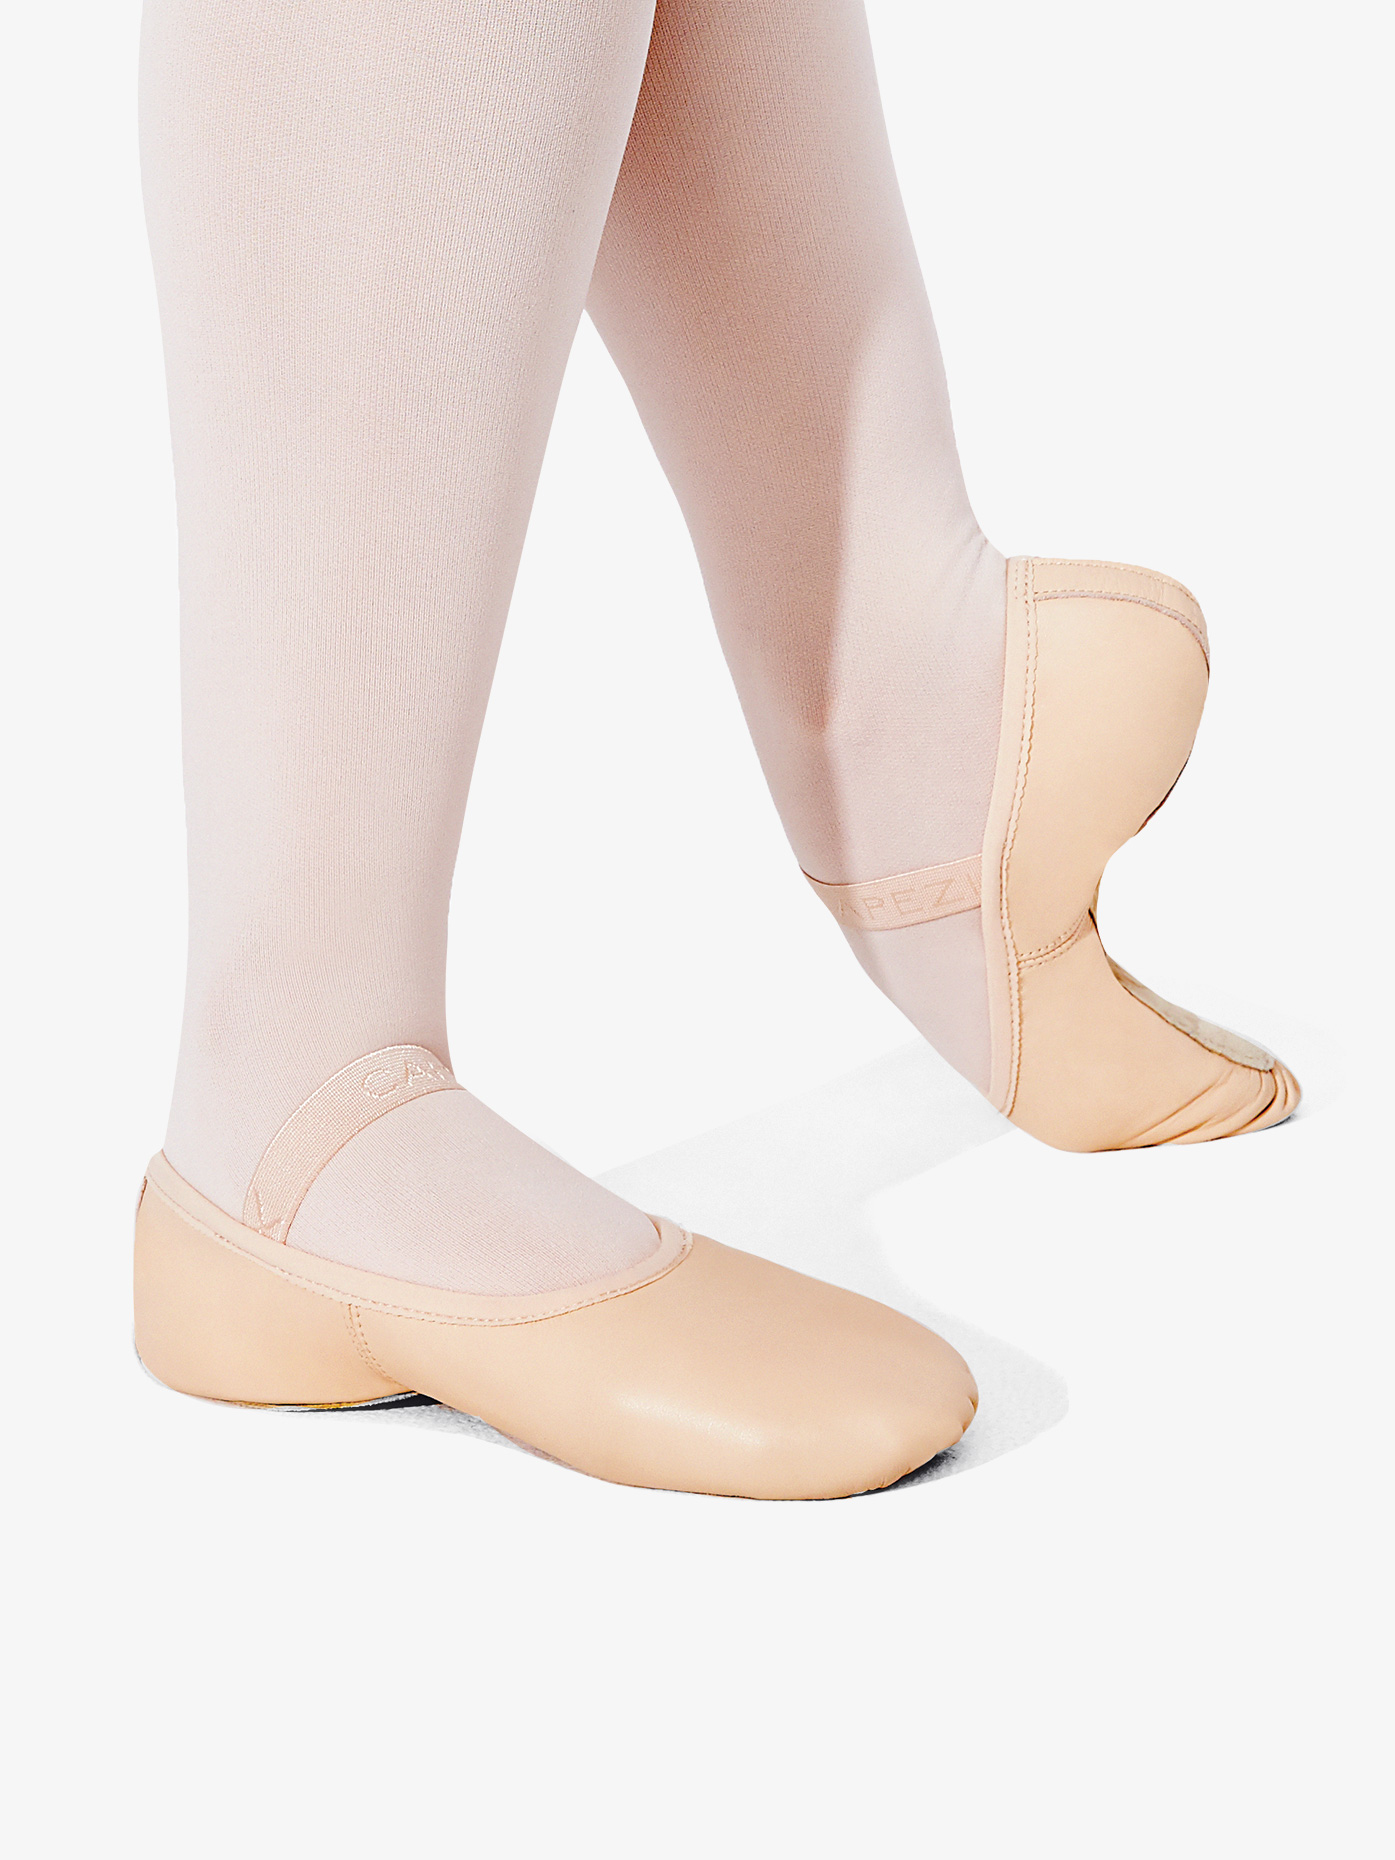 Capezio Womens Lily Full Sole Leather Ballet Shoes 212W